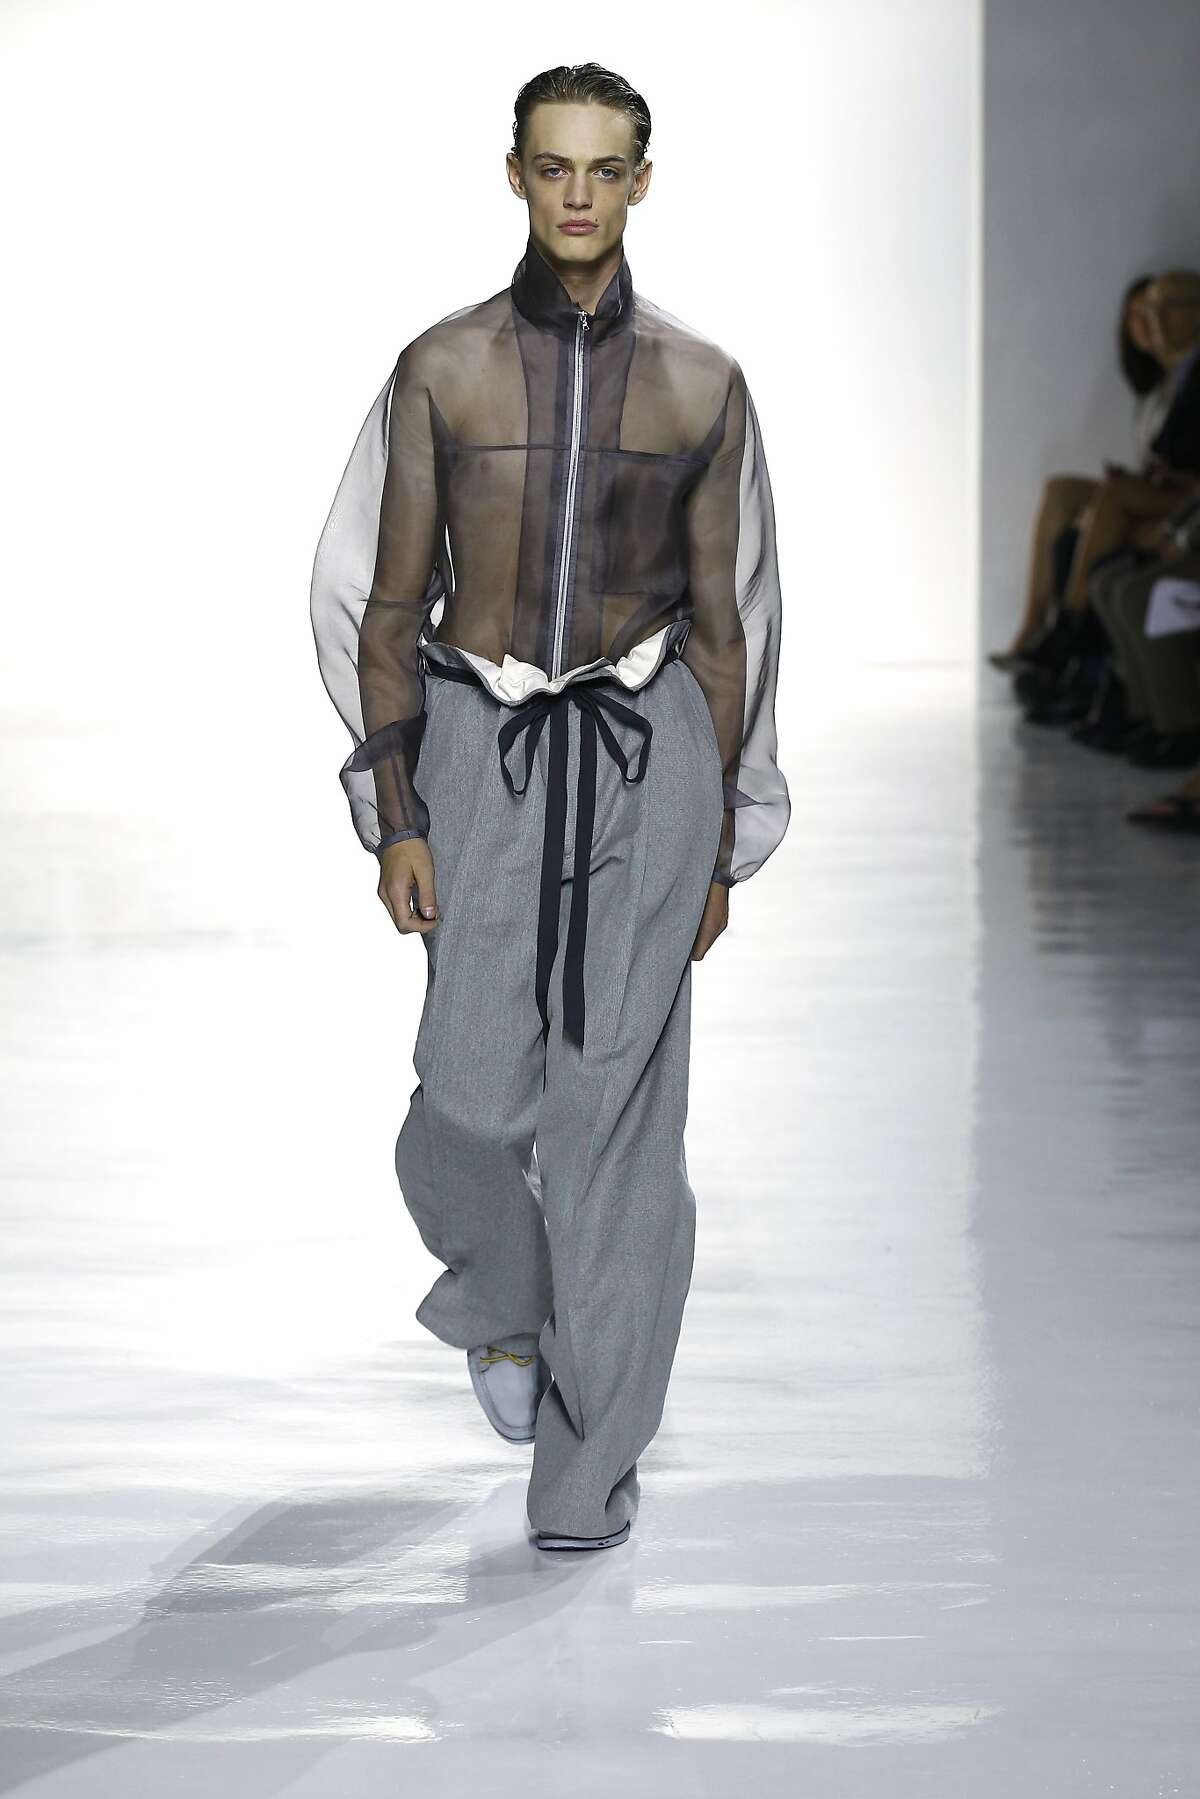 The looks at Duckie Brown, presented July 14 at New York Fashion Week: Mens, played with volume and cinched waist looks.